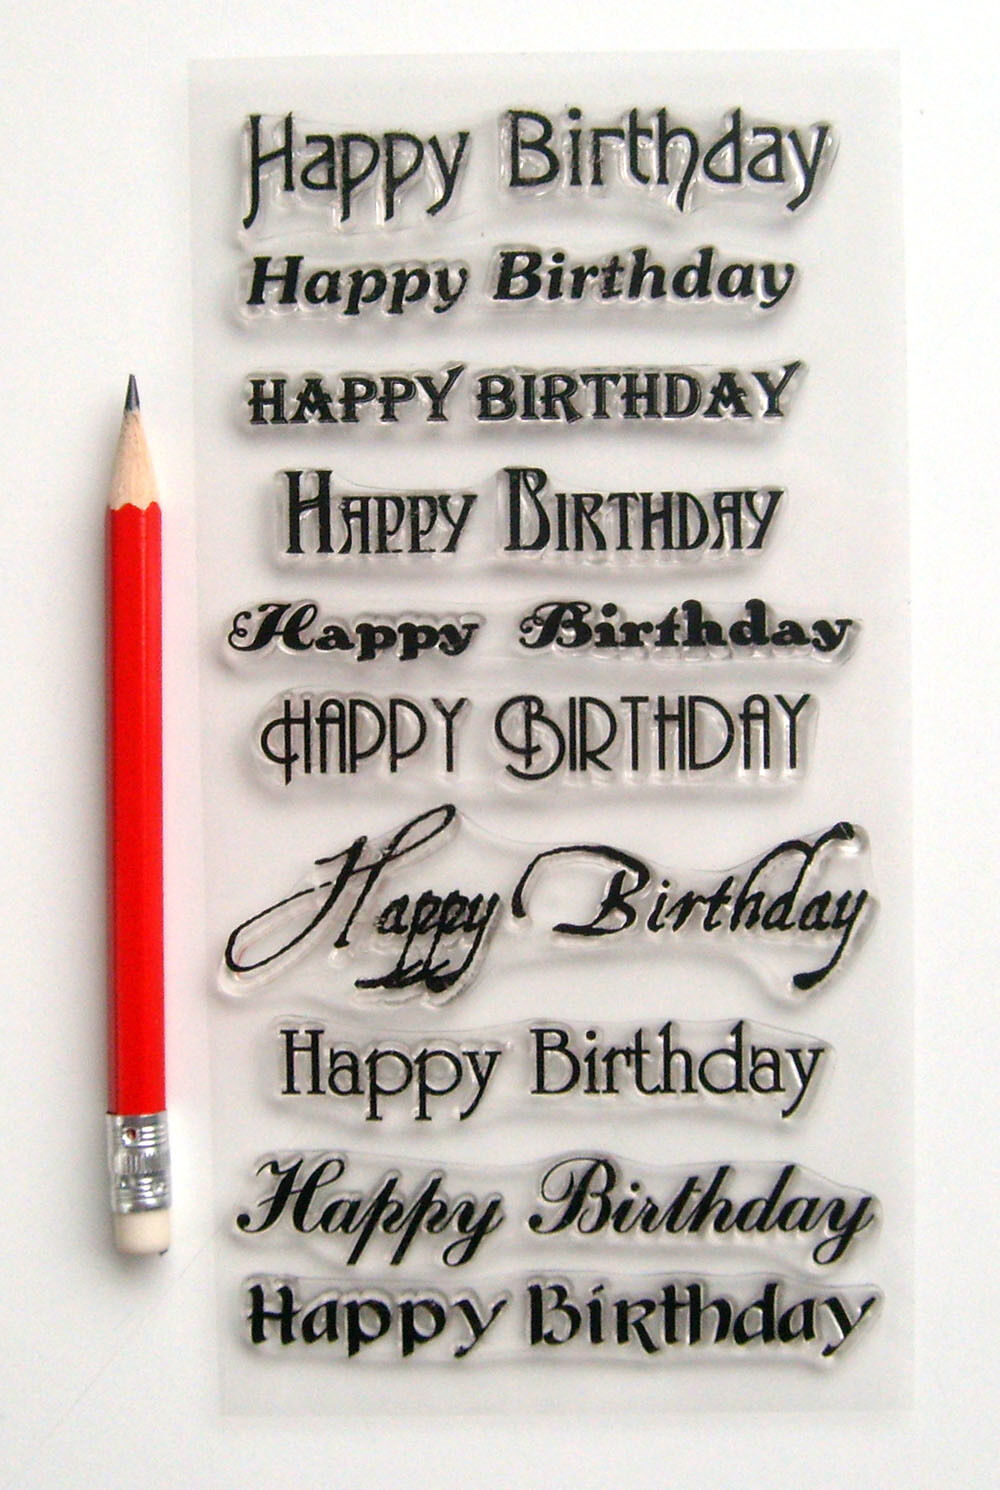 Clear Stamps Lot 4x7 Happy Birthday Greetings Wishes Words Flonz